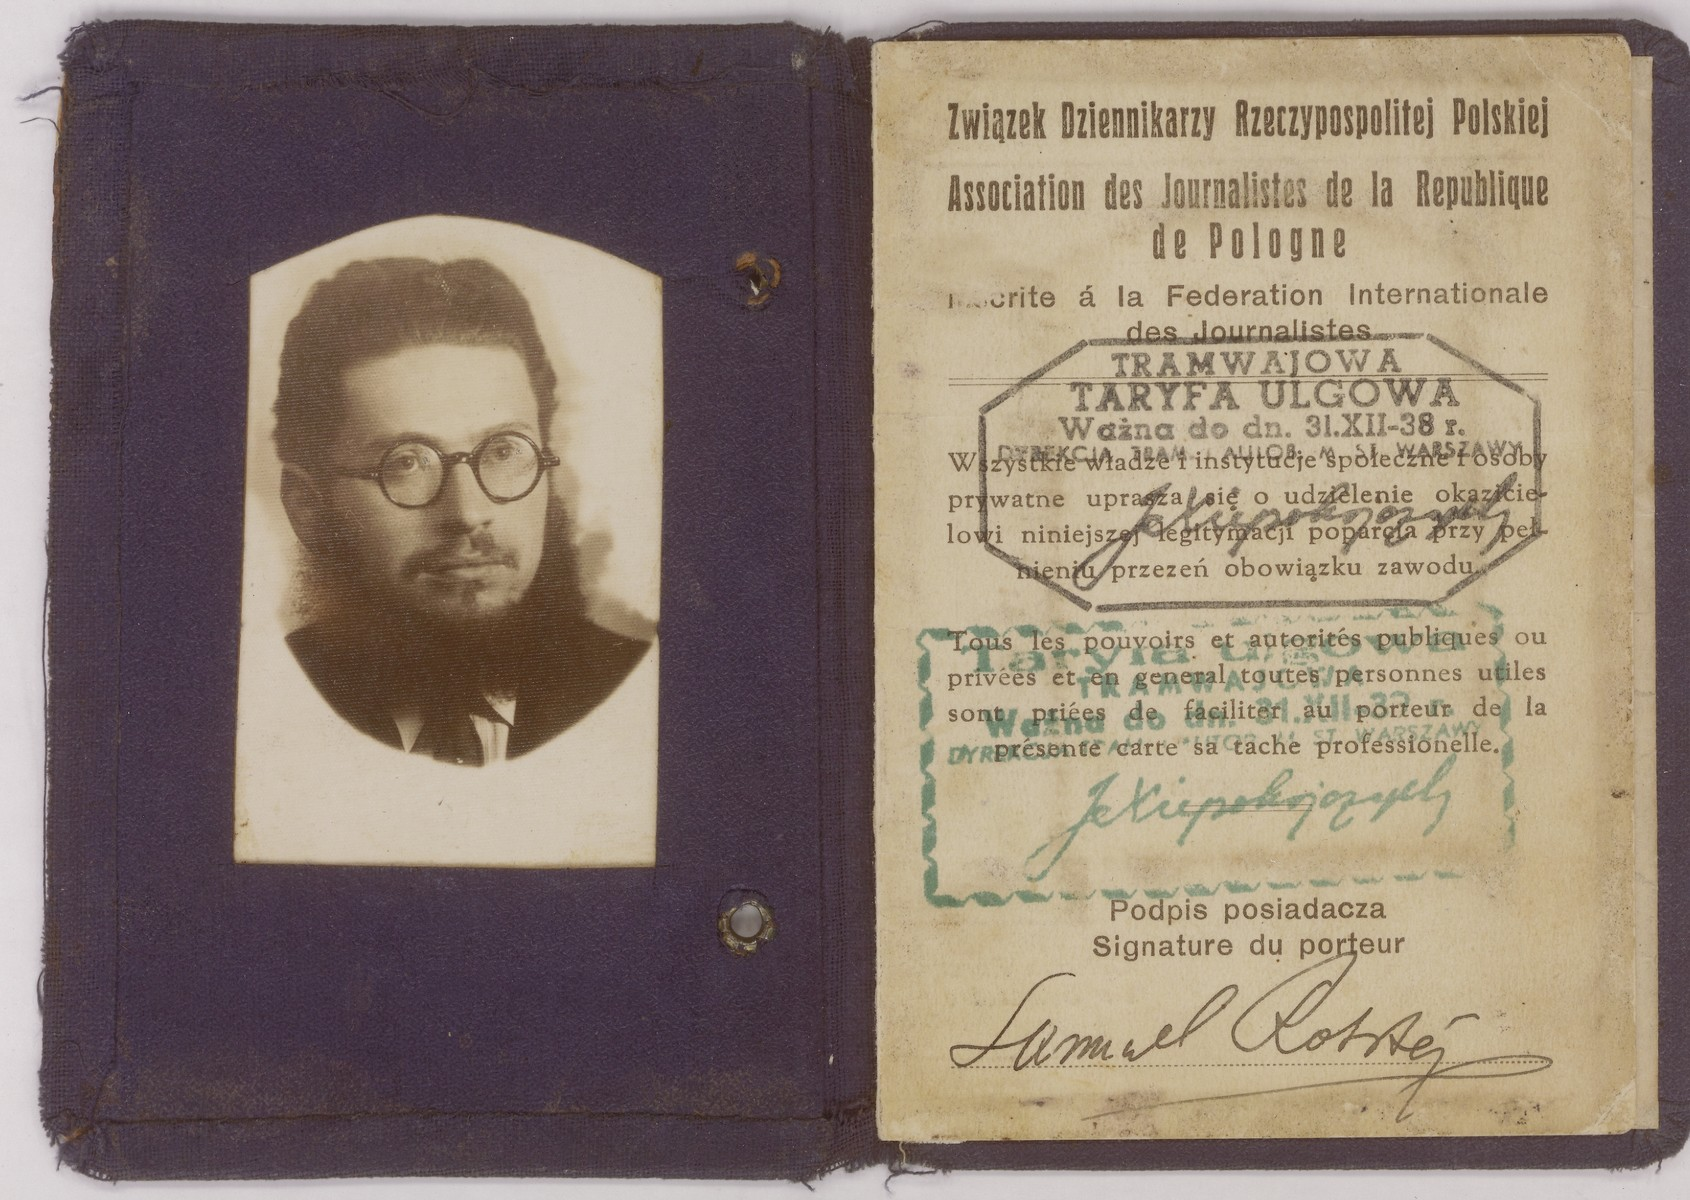 """Membership card issued to Szmuel Icek Rotsztajn, the donor's father, by the Association of Journalists in Poland.    Rotsztajn was an orthodox Jewish publicist, novelist and short story writer, who was co-editor of """"Dos Yiddishe Tagblat"""" and editor of the orthodox literary journal """"Der Flaker""""."""